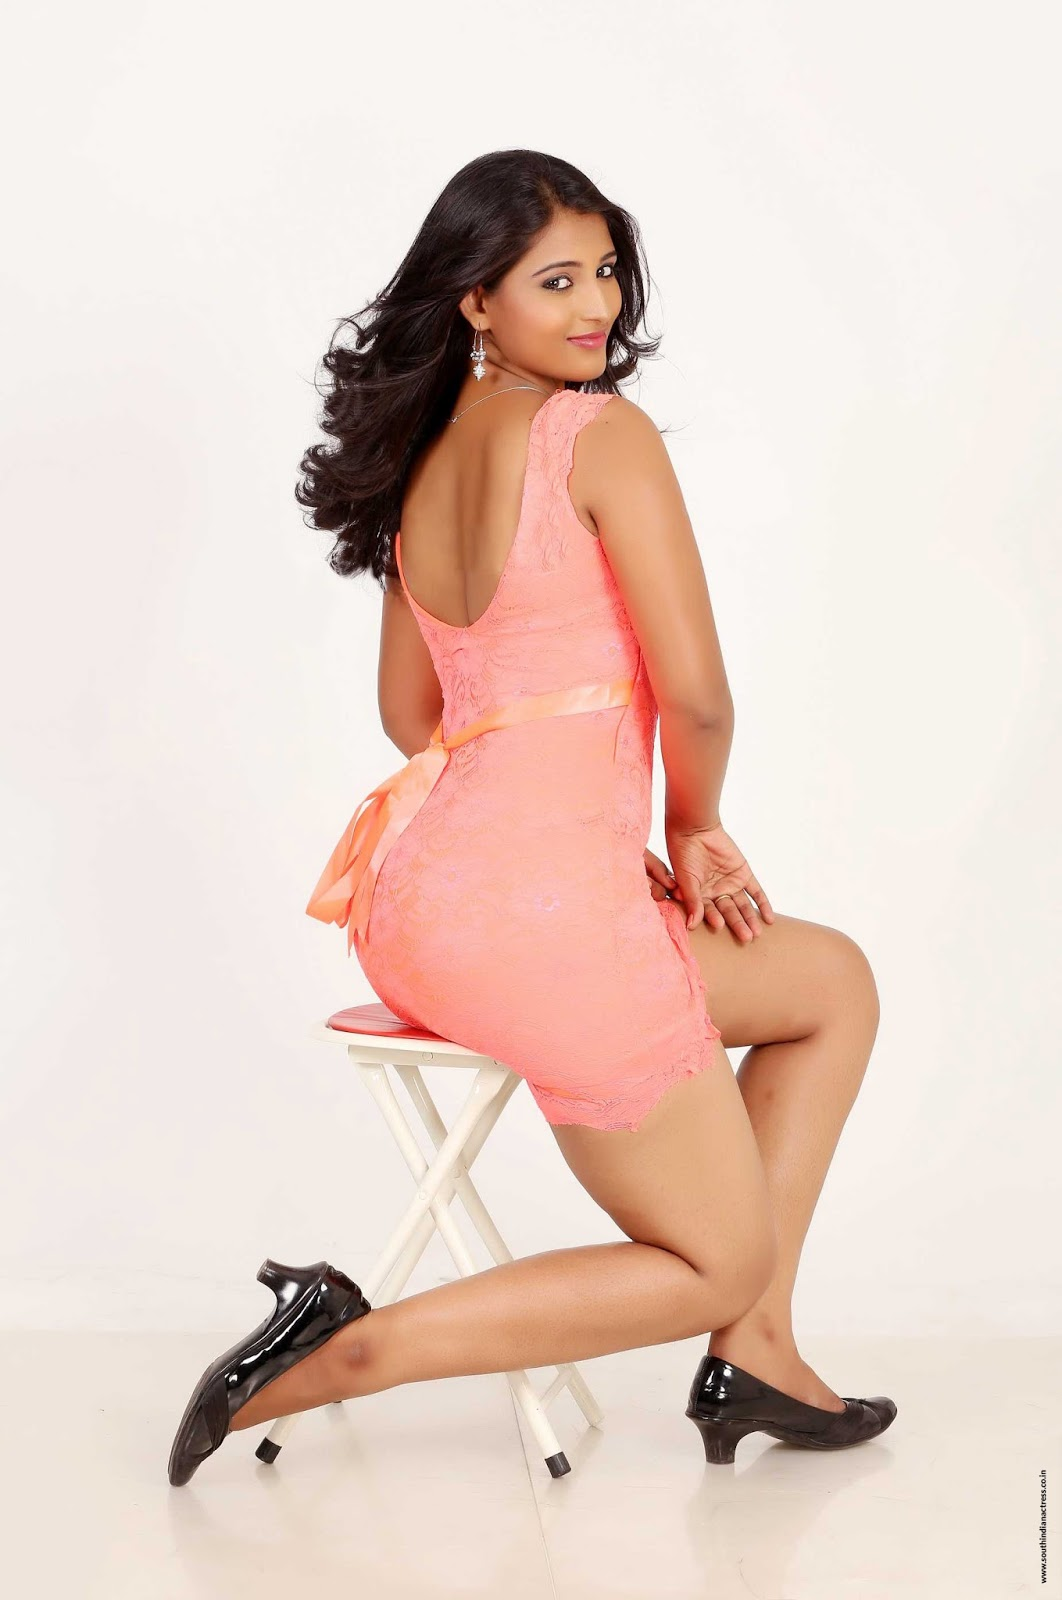 Teja Reddy Hot Photoshoot Stills - Sydindisk skuespillerinde-3832